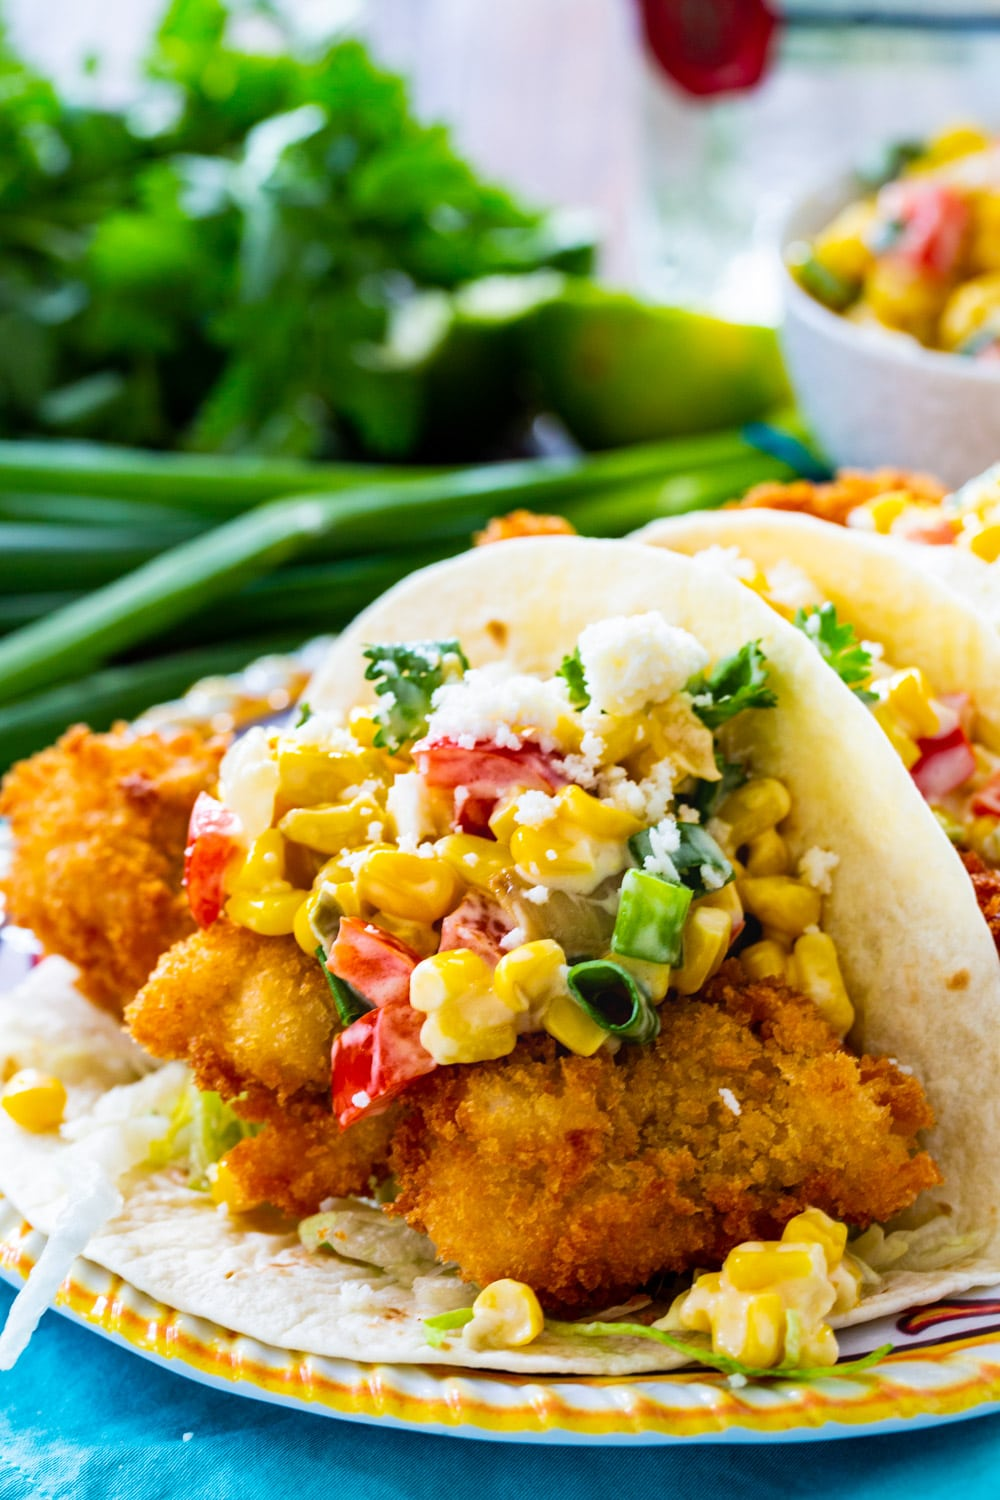 Crunchy Catfish Tacos with Tequila Creamed Corn on a plate.